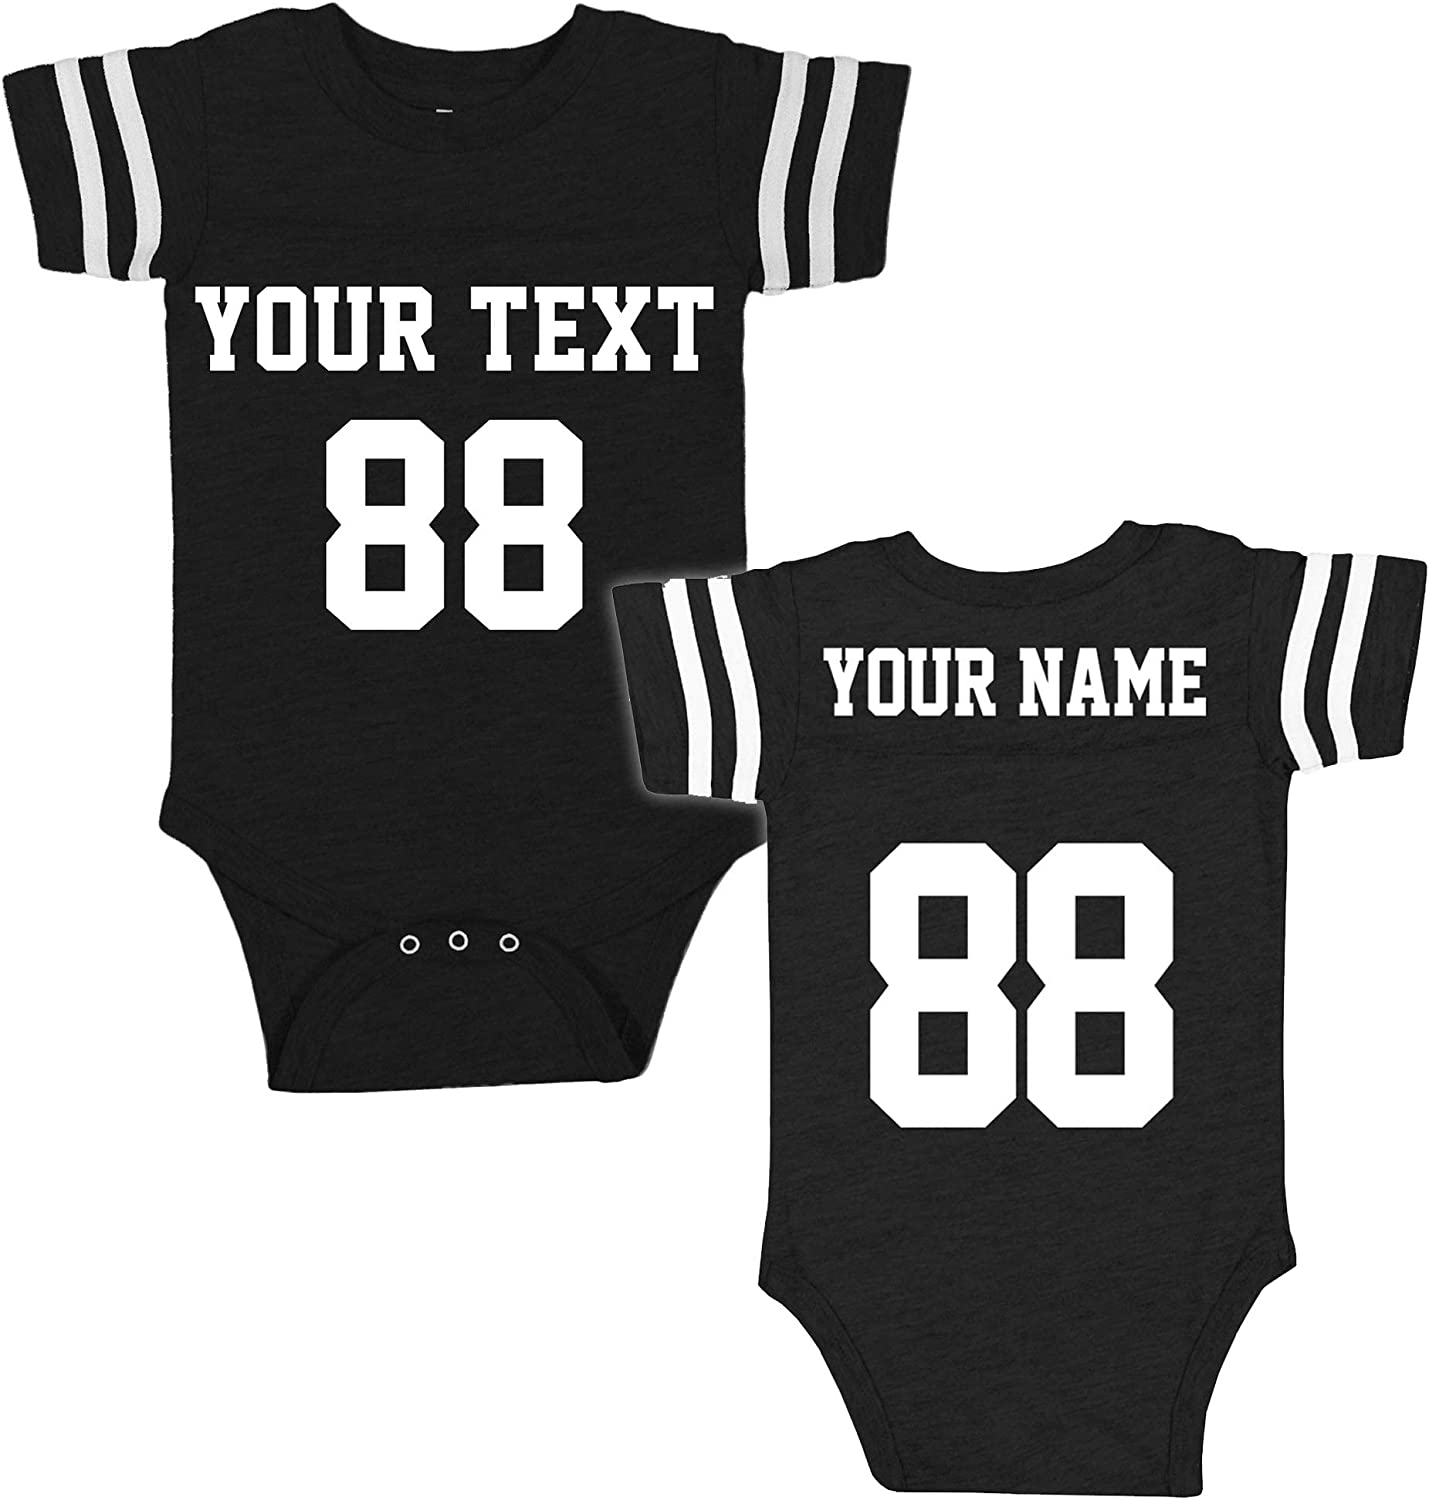 Custom Jerseys for Babies - Make Your OWN 2 Sided Jersey Onesie - Personalized Baby Onesies & Outfits